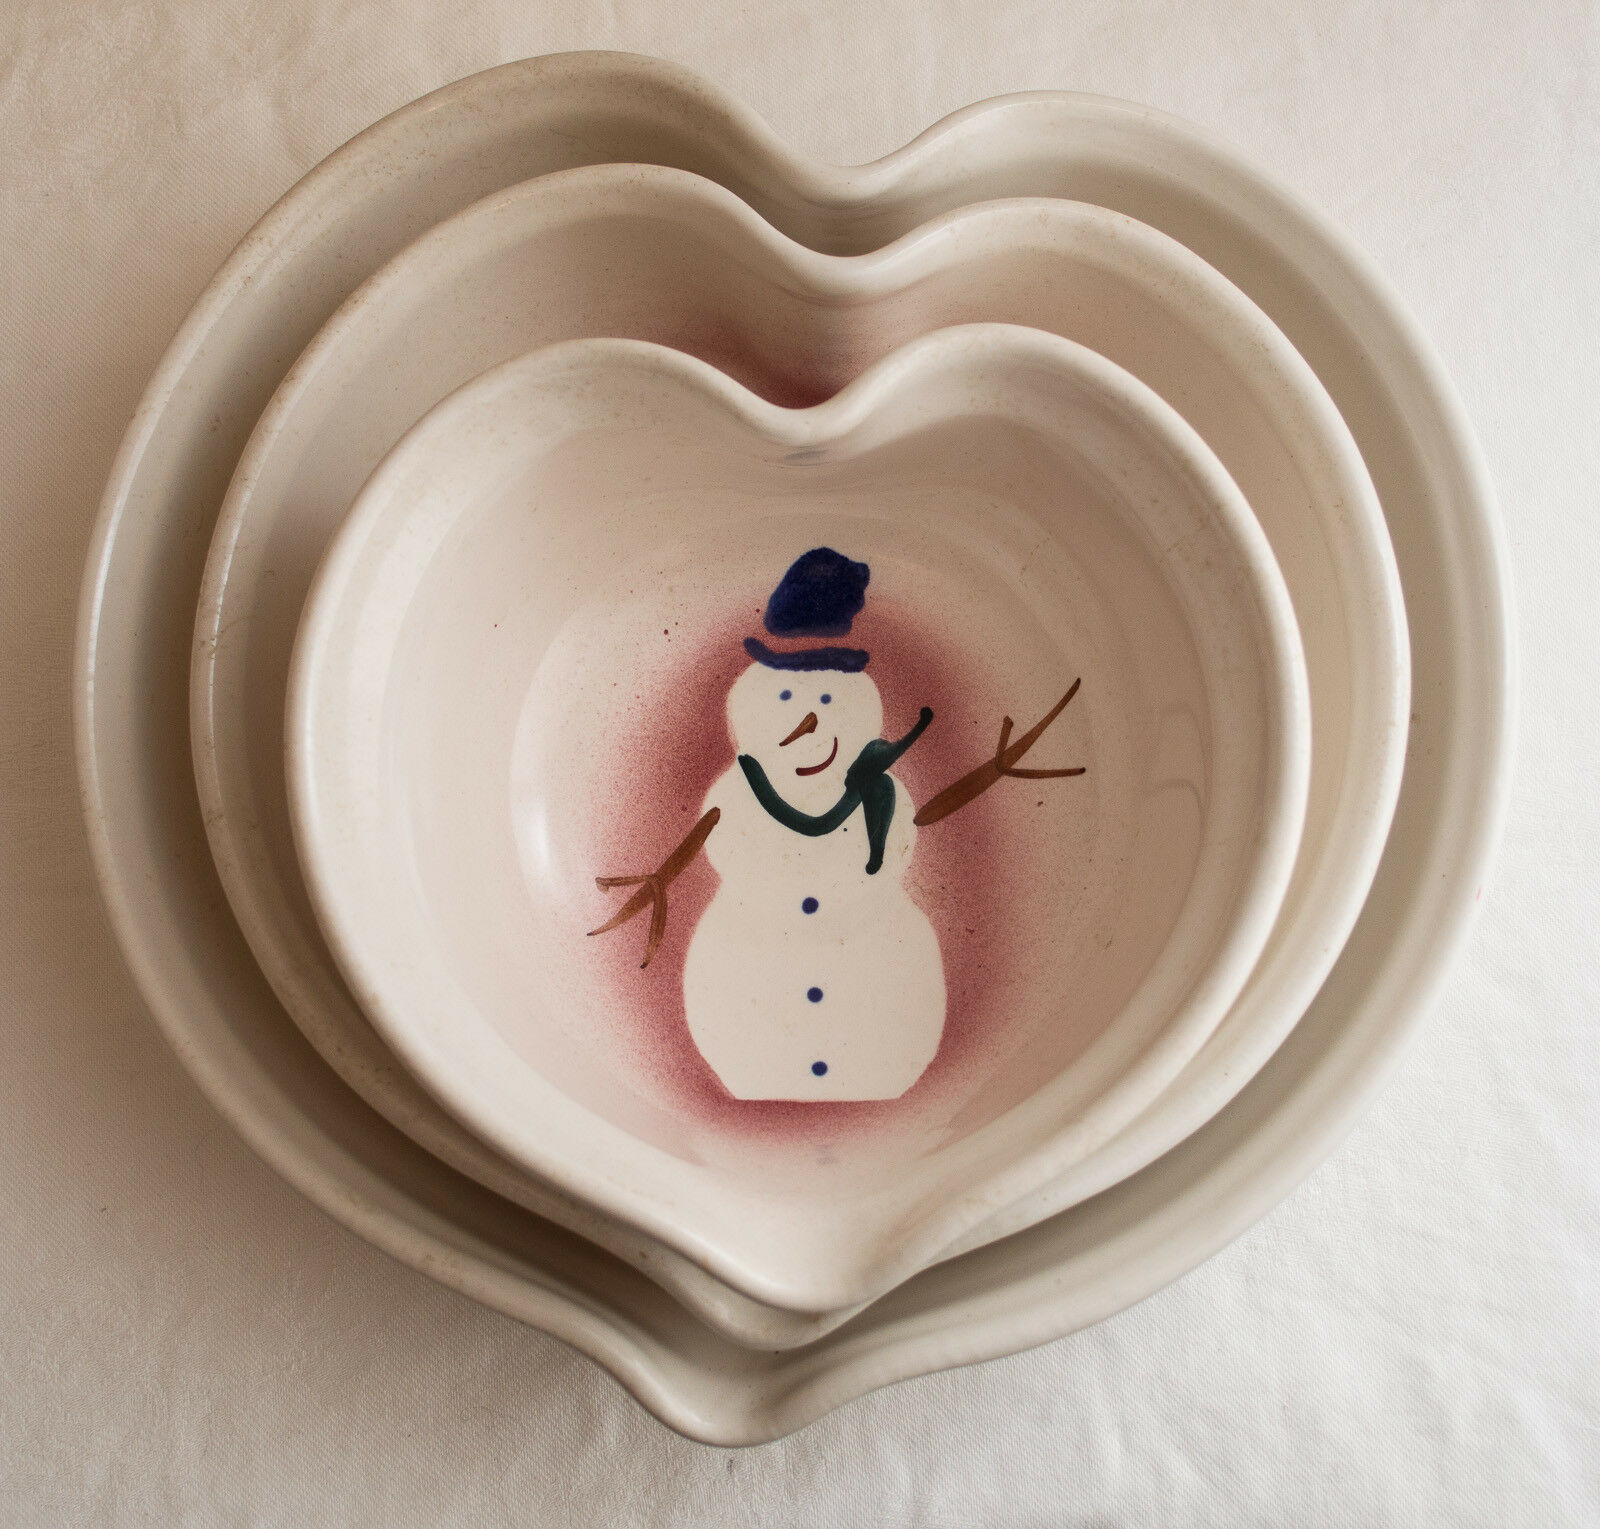 Made-in-the-USA Set Set Set of 3 Heart-Shaped Snowmen Nesting Bowls by Clay in Motion 840453